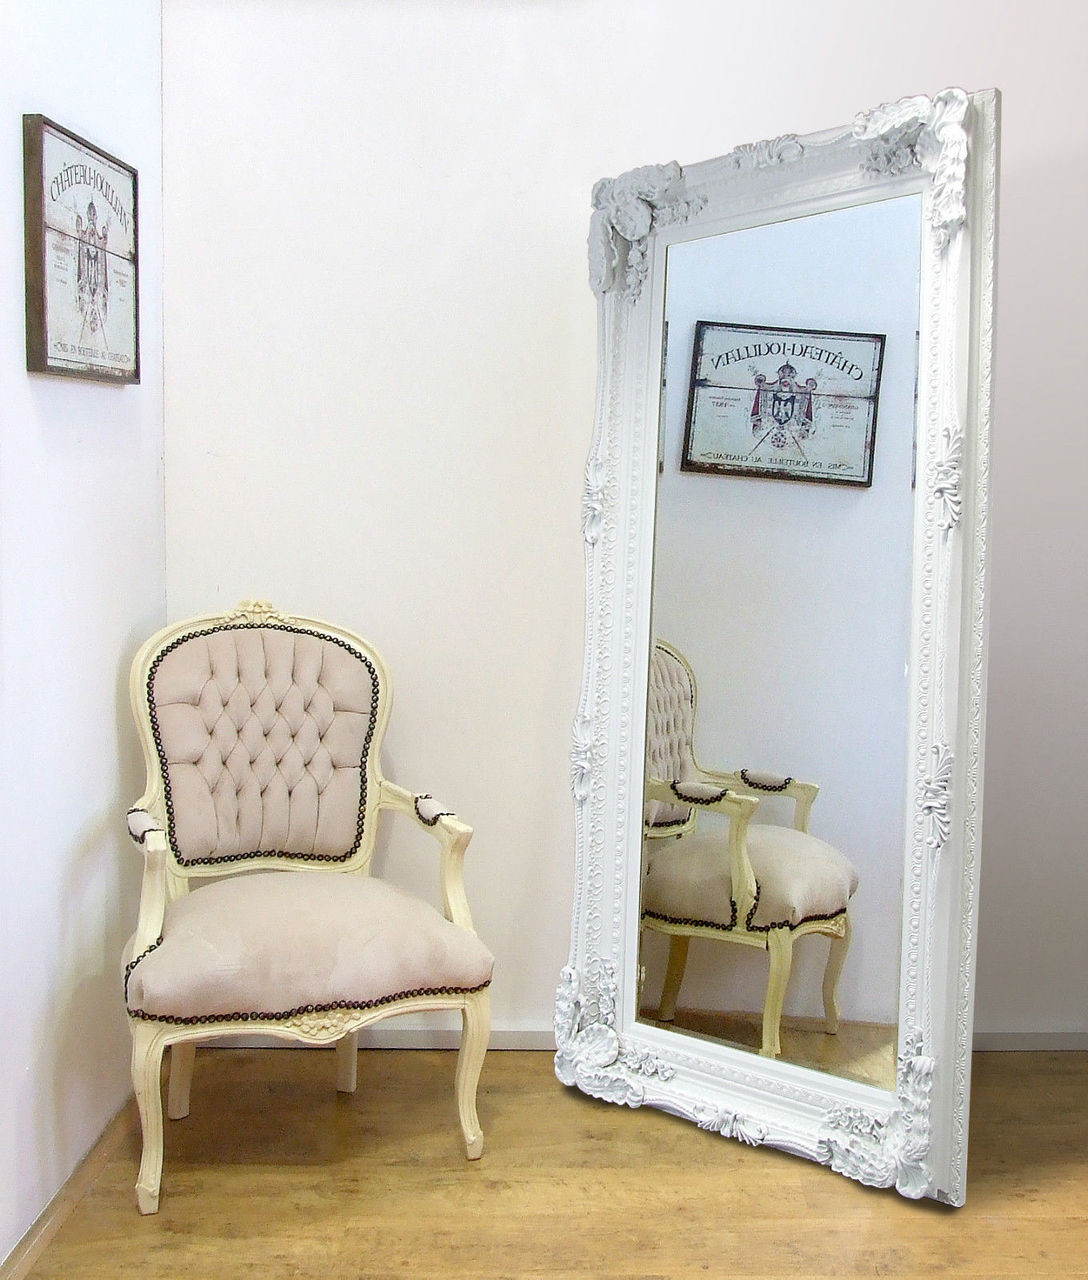 Madrid Ornate X Large French Full Length Wall Leaner Mirror White 35 X 71 Mirrors 2 Home